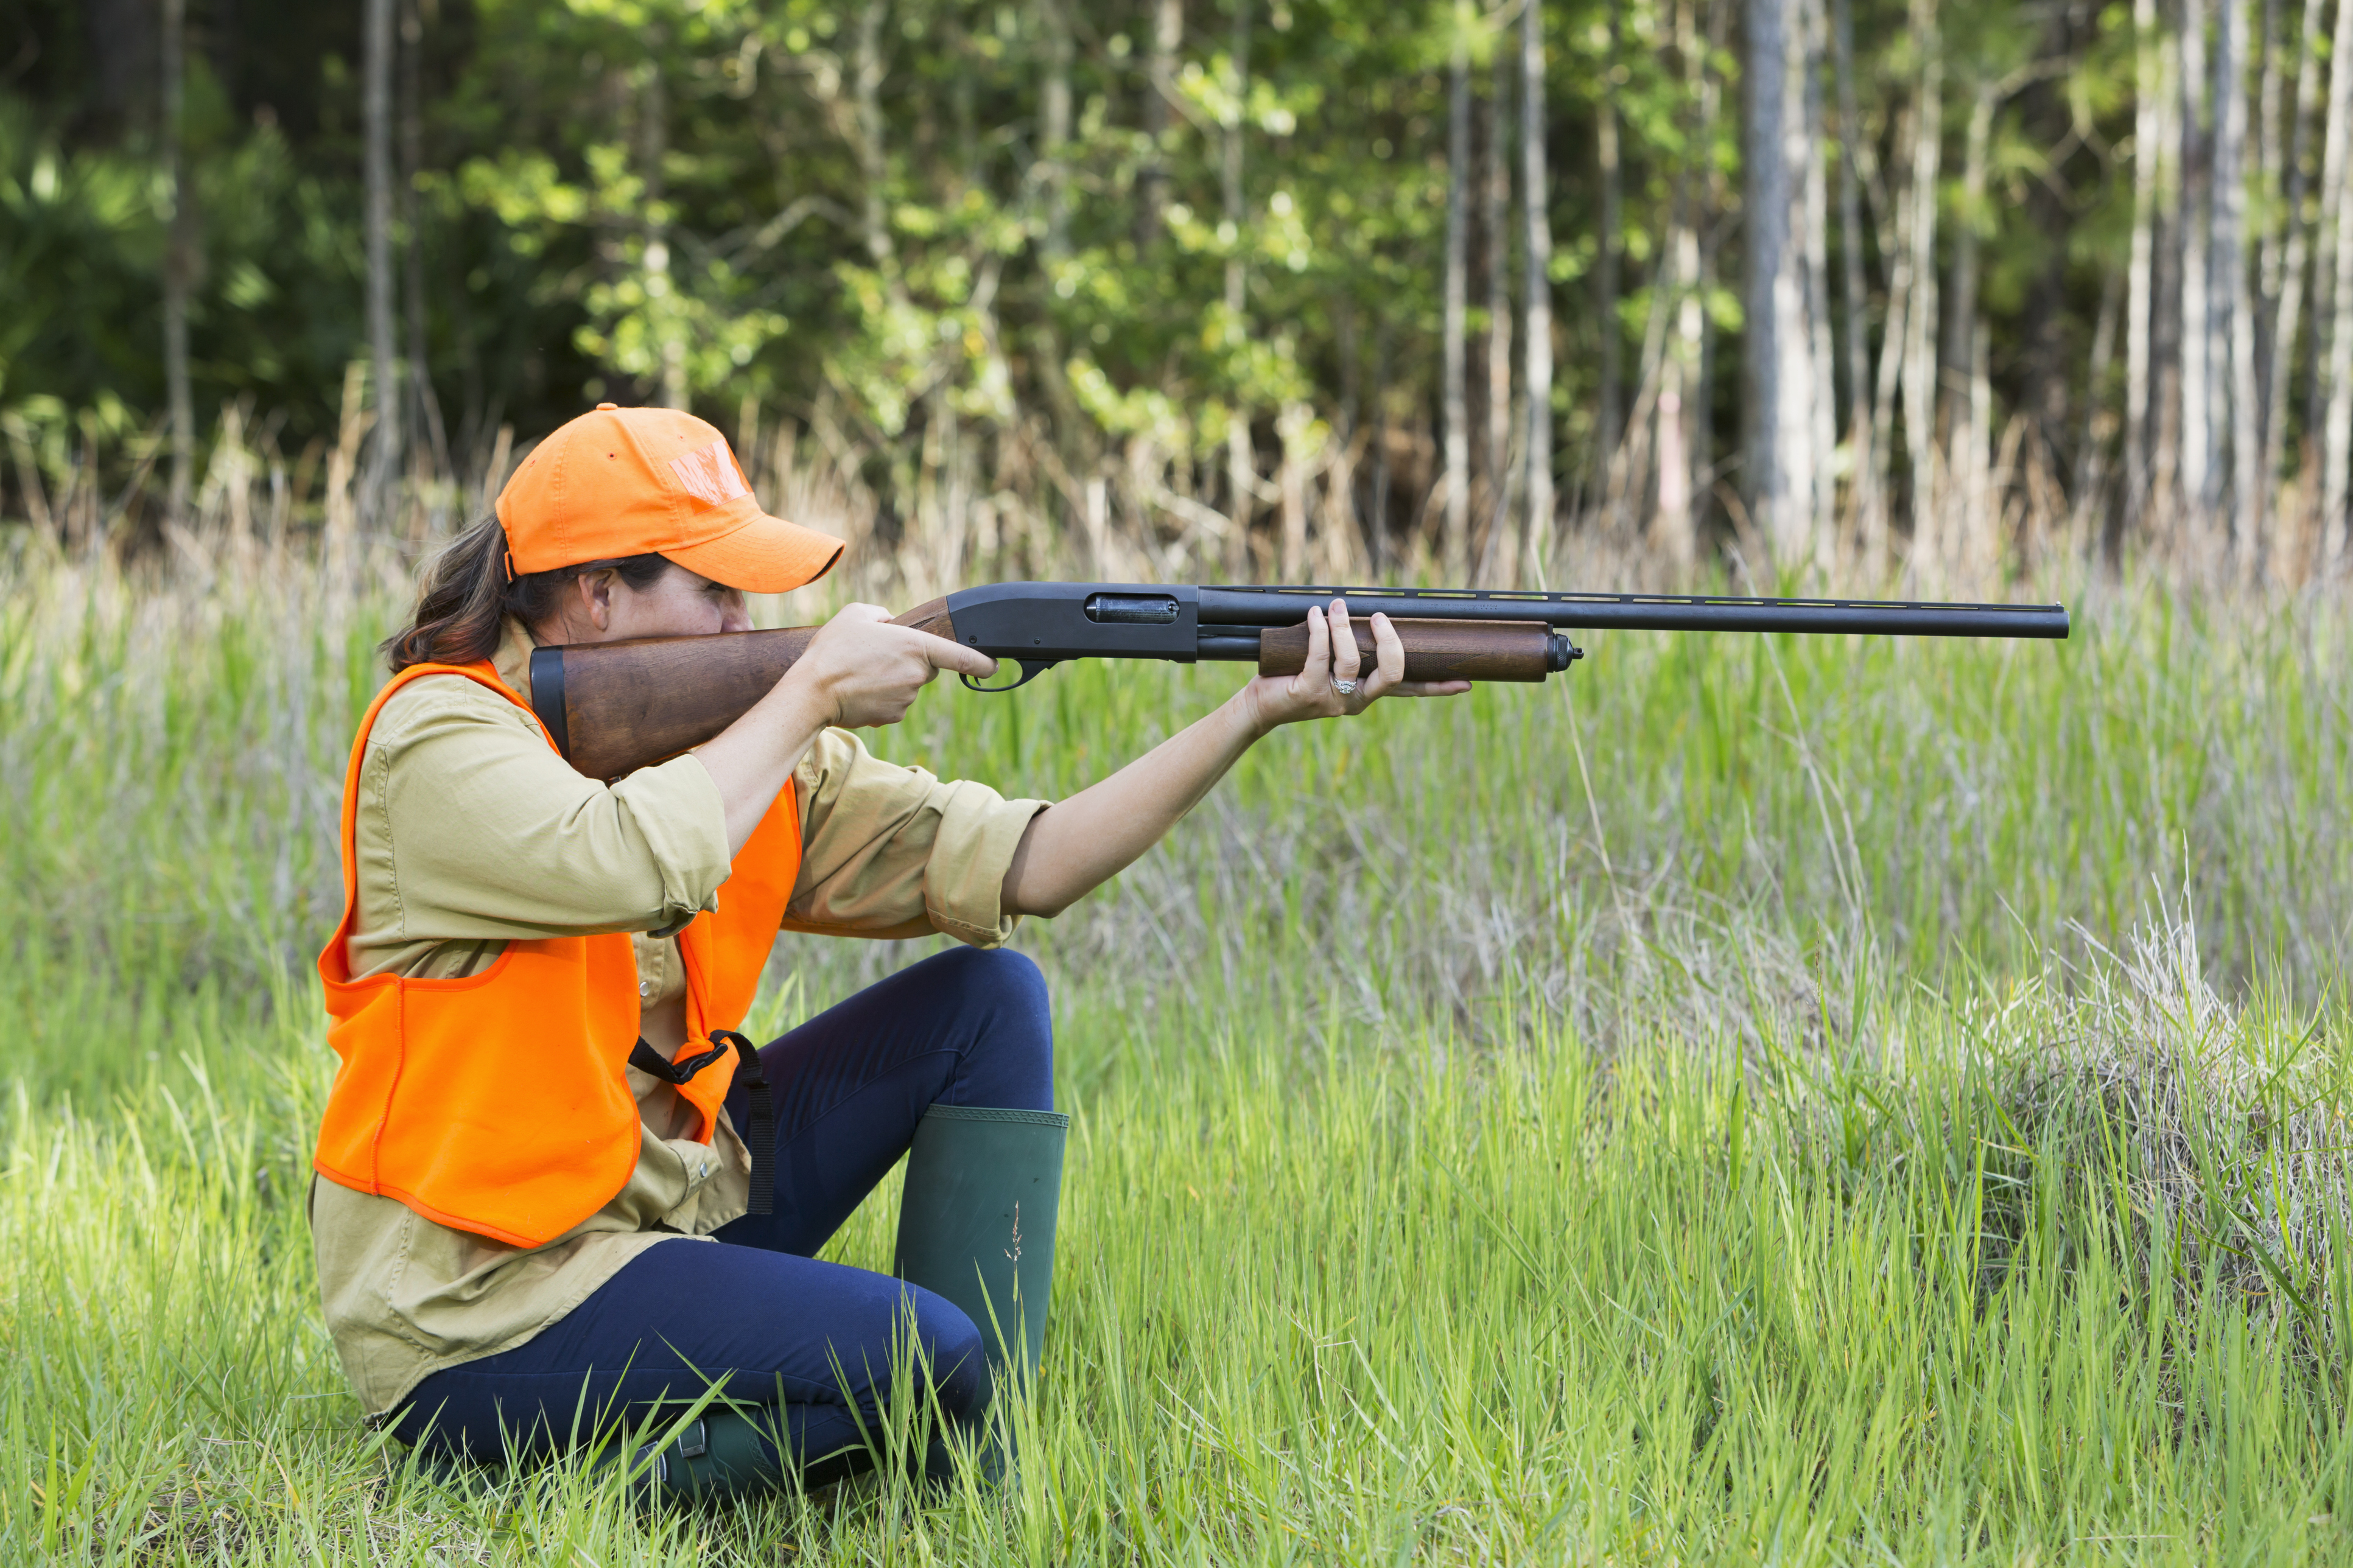 A woman hunting for birds or other small game, kneeling in tall grass, wearing a bright orange safety vest and hat, holding a shotgun, taking aim at her target.